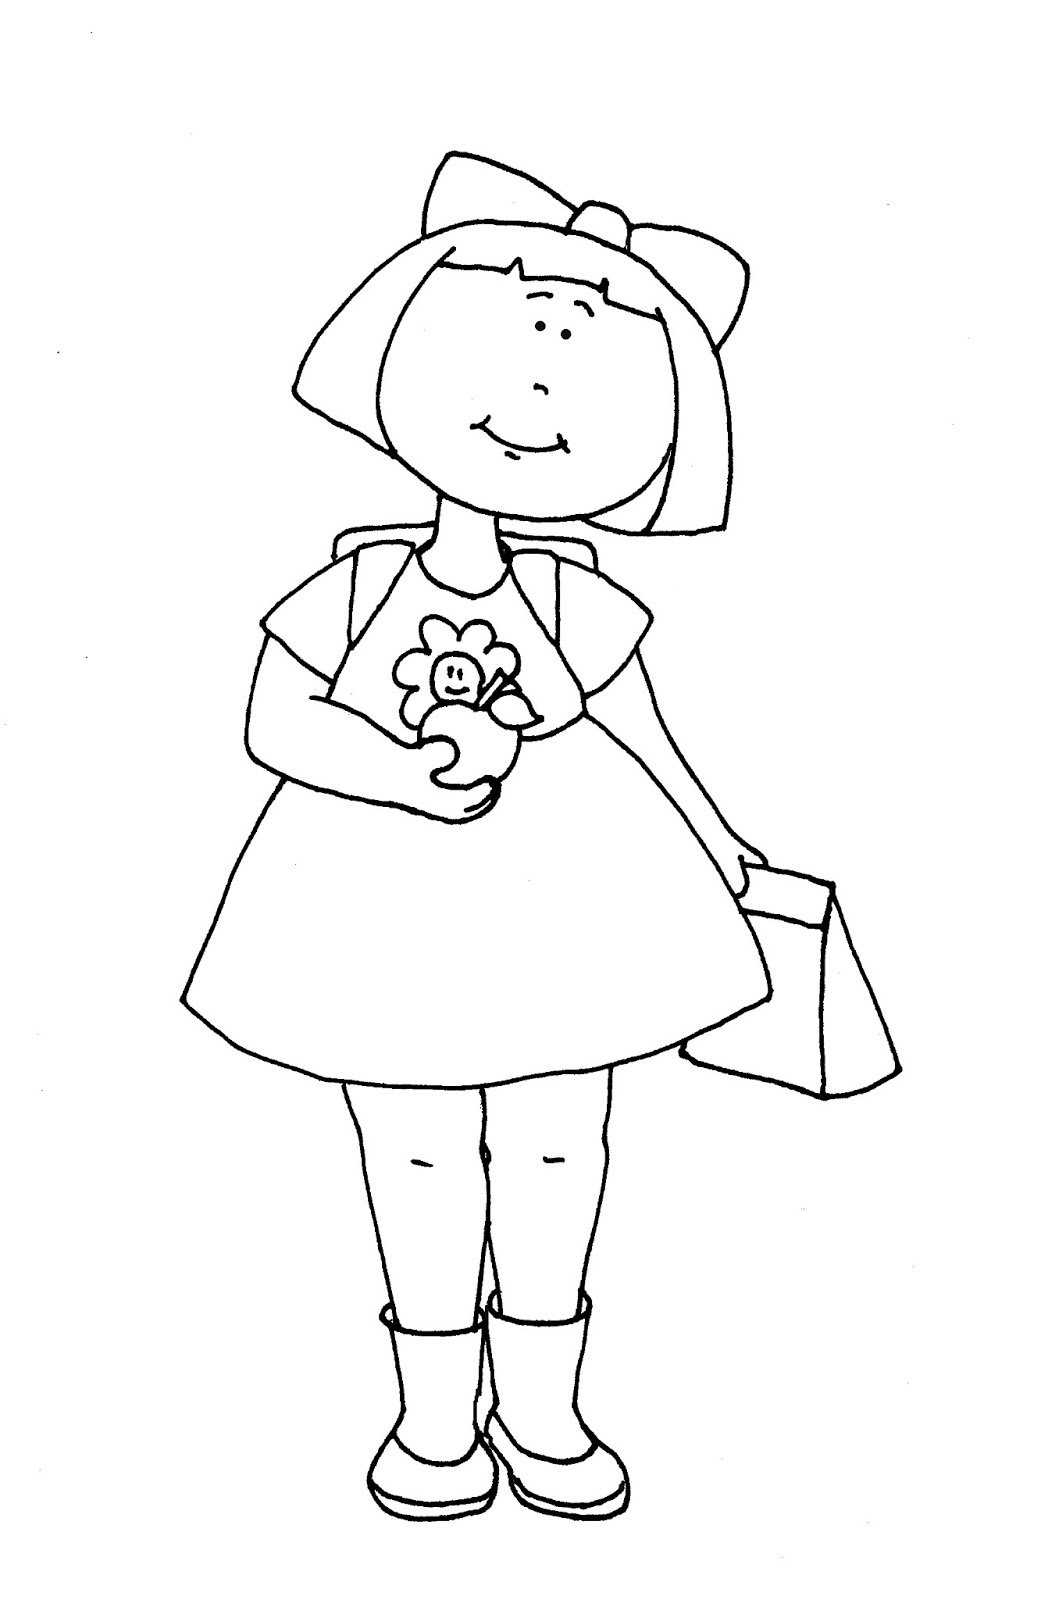 school girl coloring pages girls at school coloring pages for girls pages coloring school girl